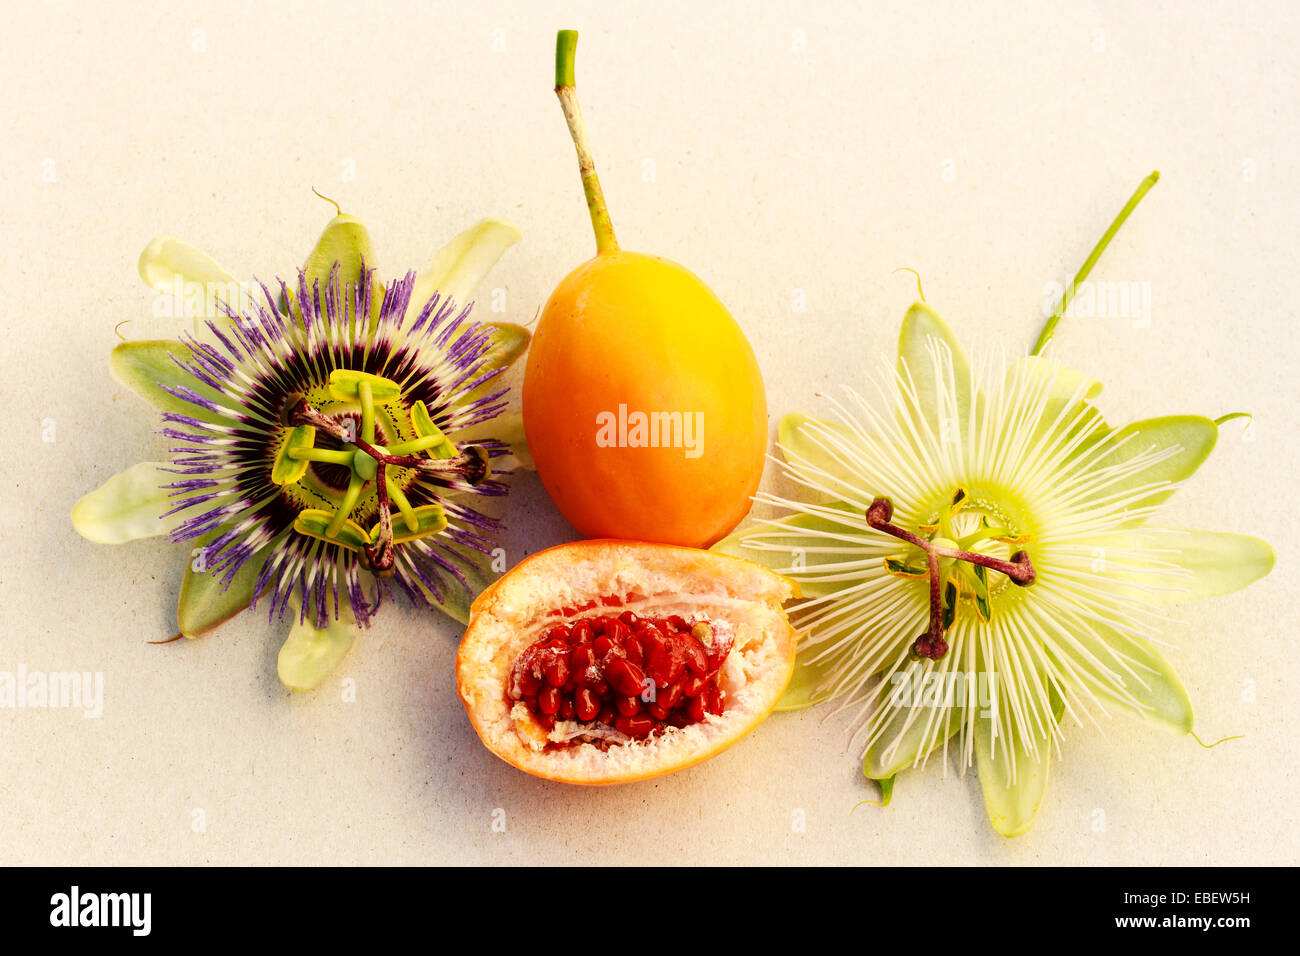 passiflora-caerulea-l-and-pc-constance-elliot-r-flowers-with-whole-EBEW5H.jpg